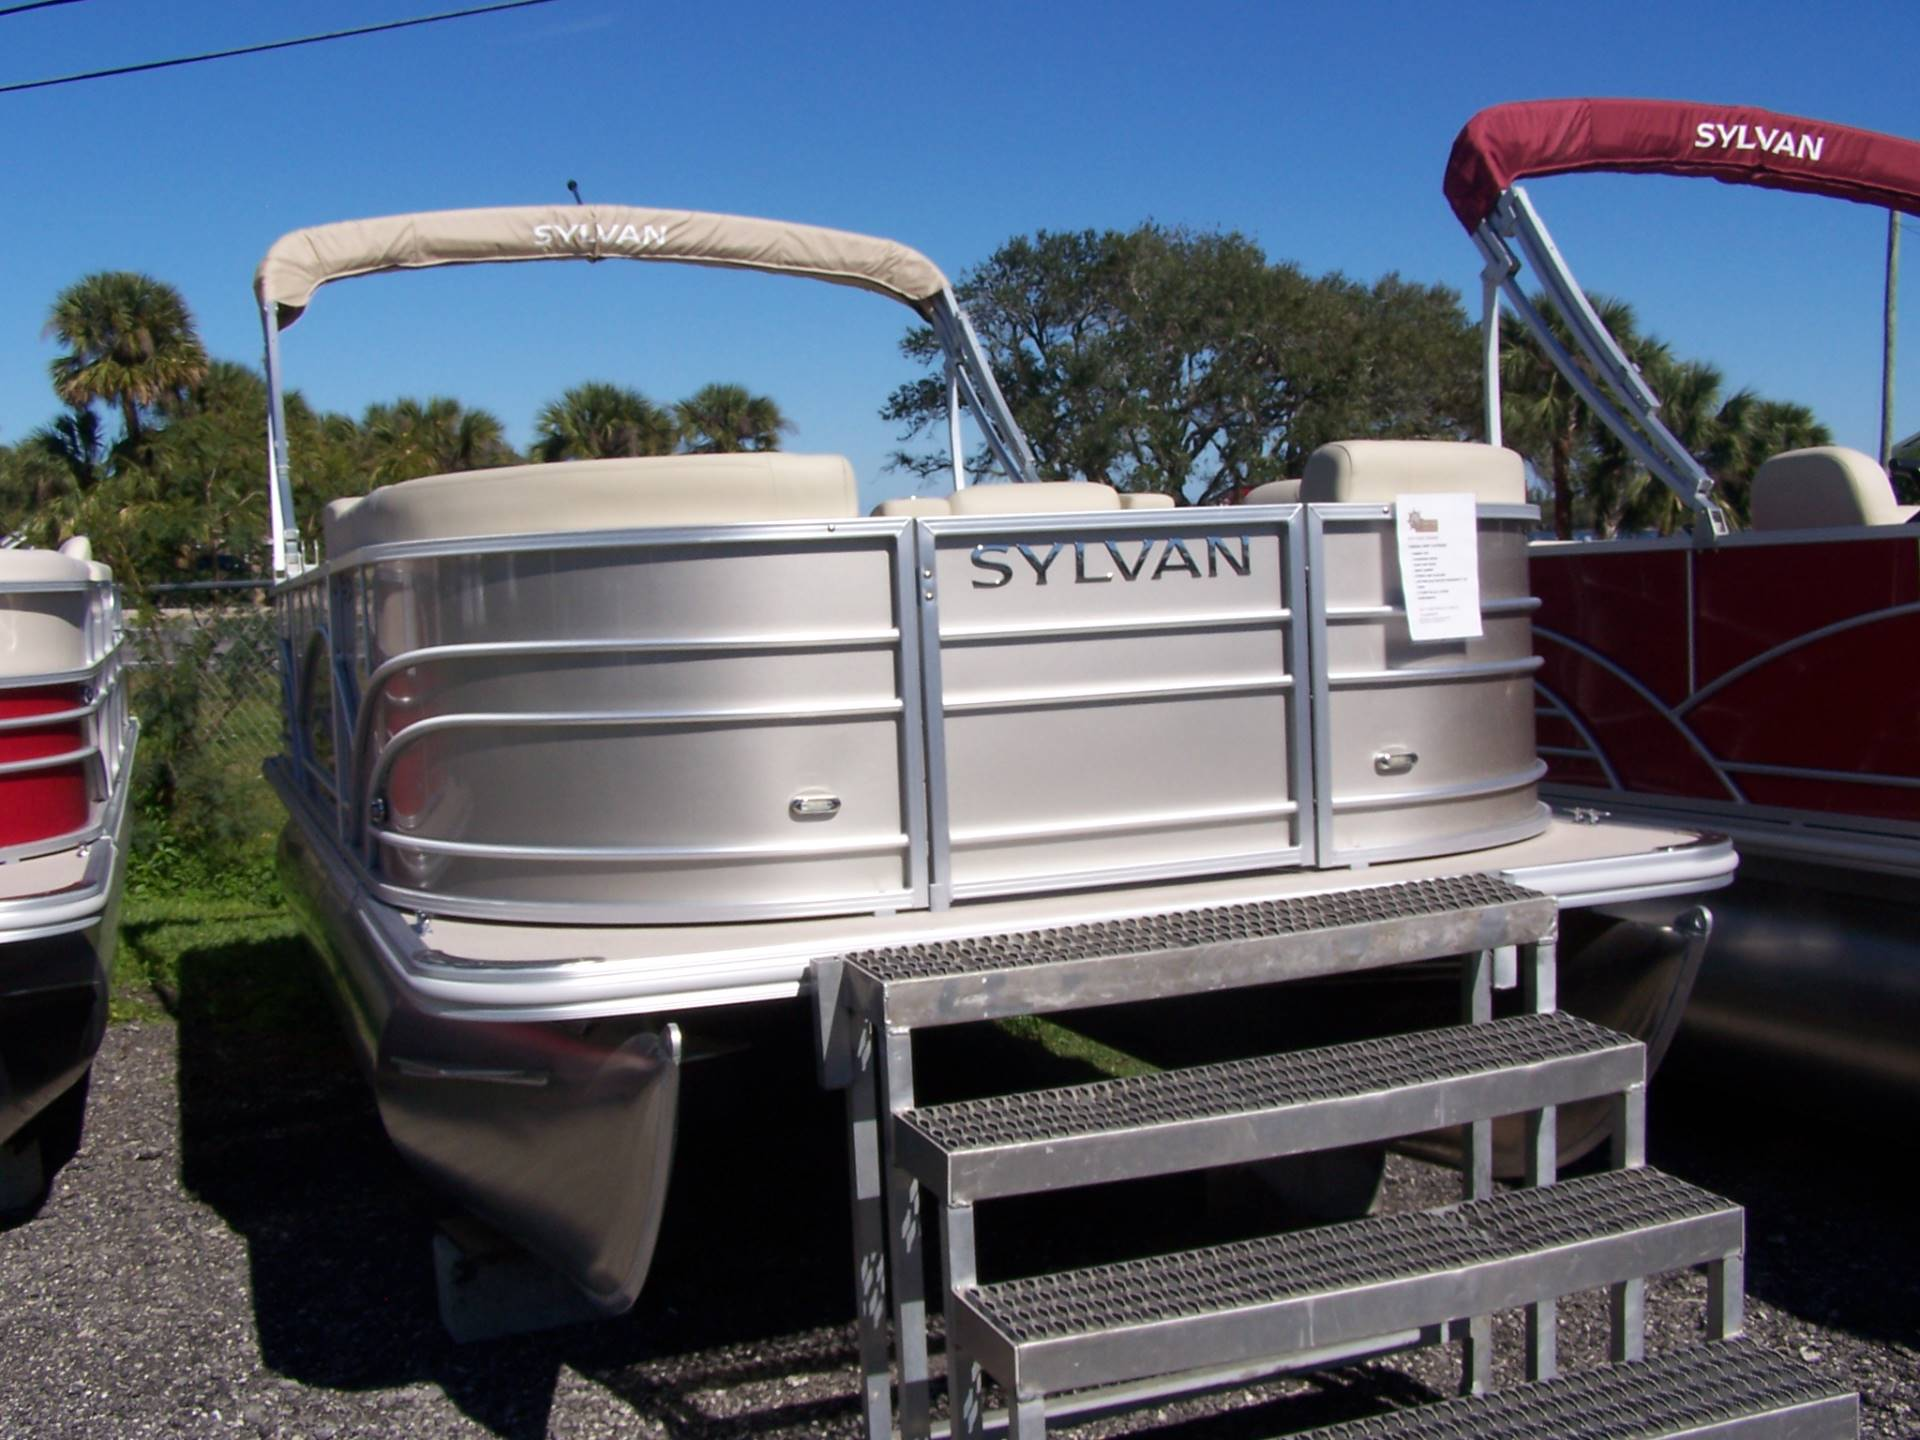 Other power sylvan boats for sale for Syvlan